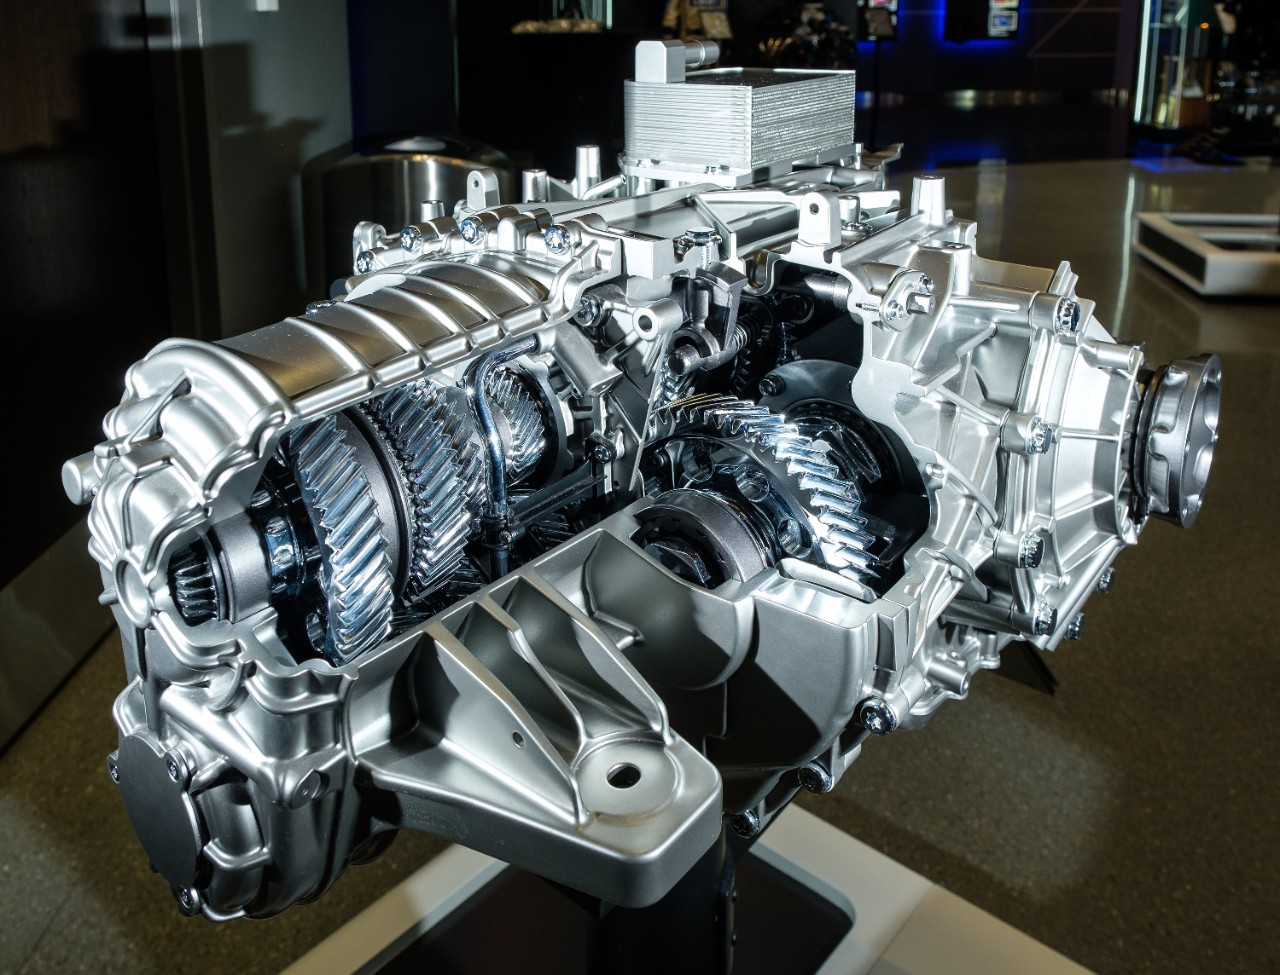 A cut-away version of the TREMEC eight speed dual-clutch transmission for the 2020 Corvette Stingray. The new mid-engine Corvette featuring the LT2 6.2L V8 engine and dual-clutch transmission can reach 60 mph in 2.9 seconds and cross the quarter mile mark in 11.2 seconds at 121 mph. (Photo by Steve Fecht for Chevrolet)